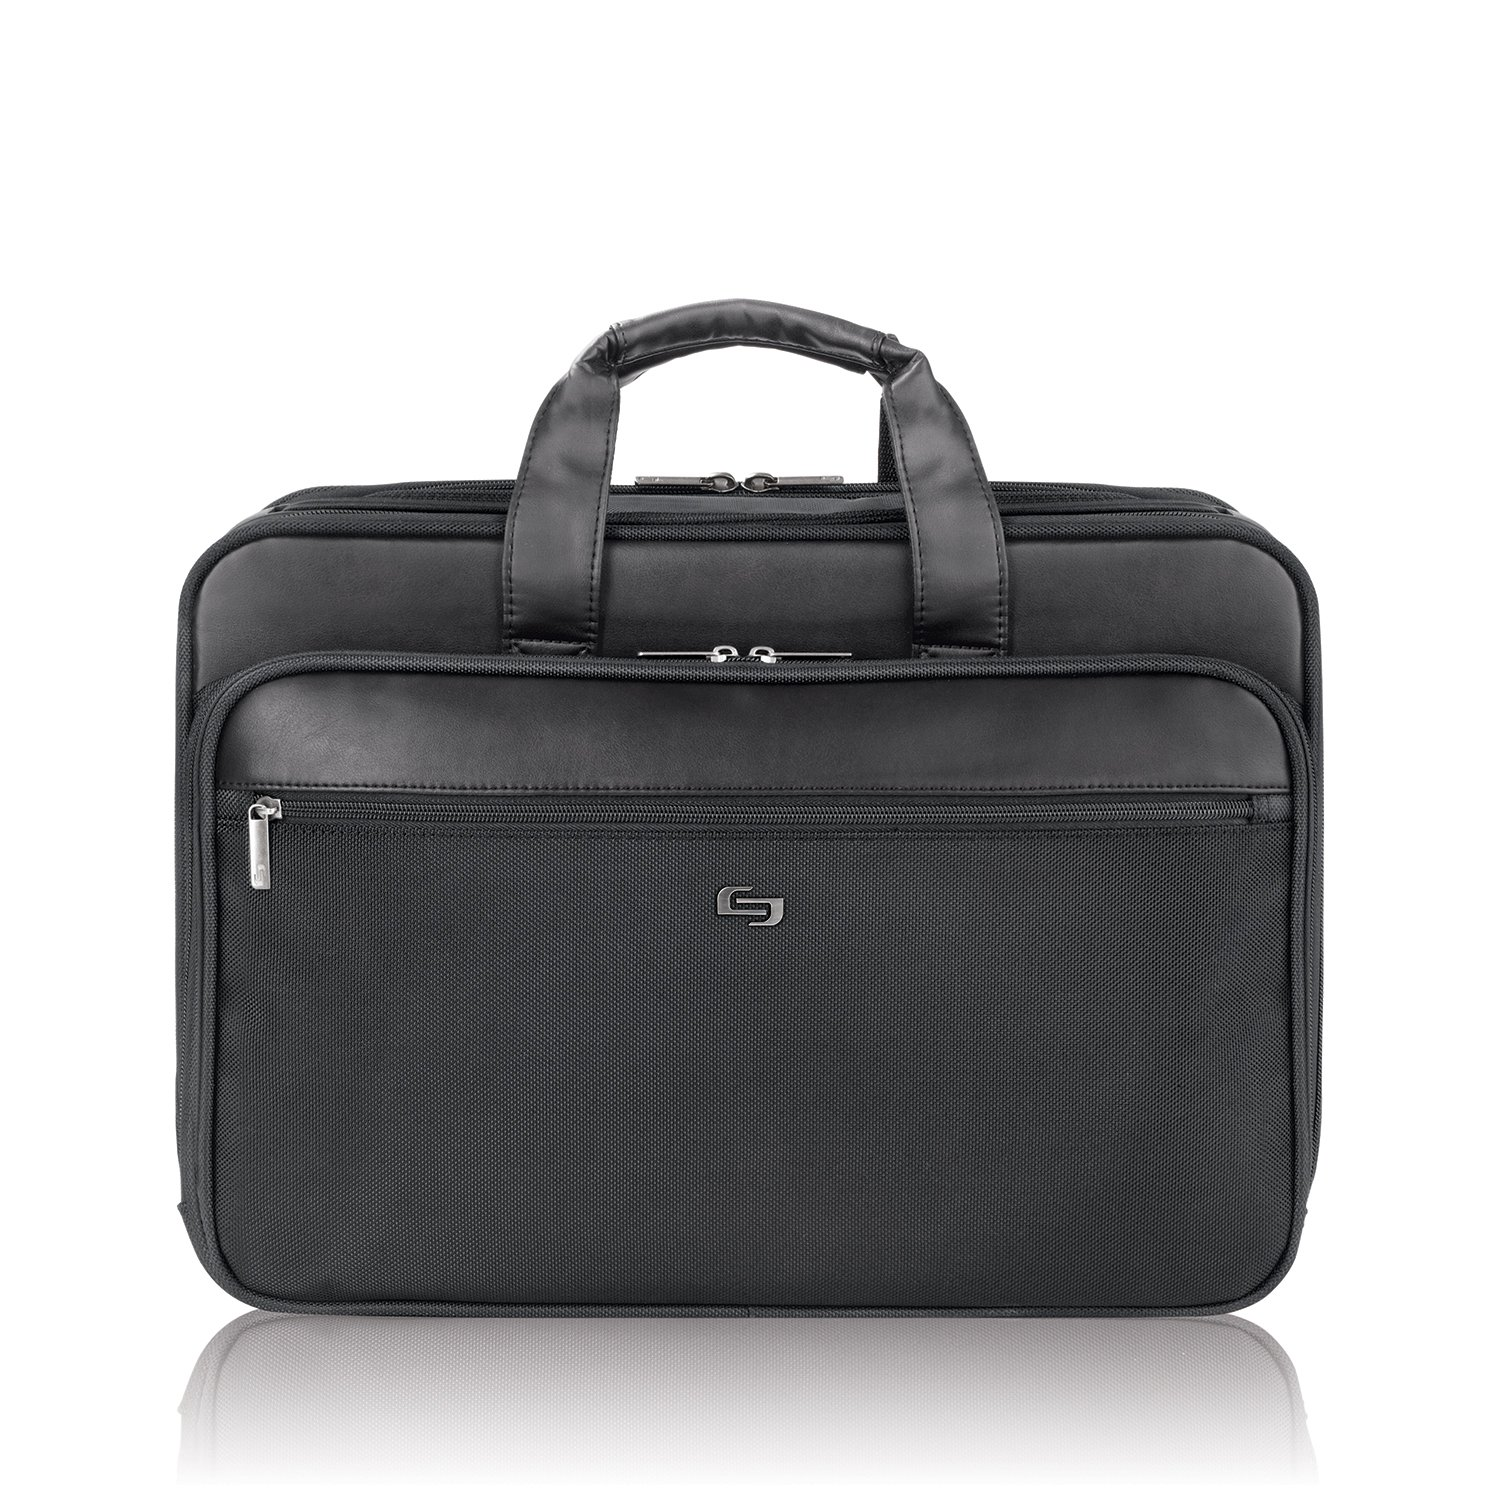 Solo Paramount 16 Inch Laptop Briefcase with Smart Strap, Black by SOLO (Image #1)